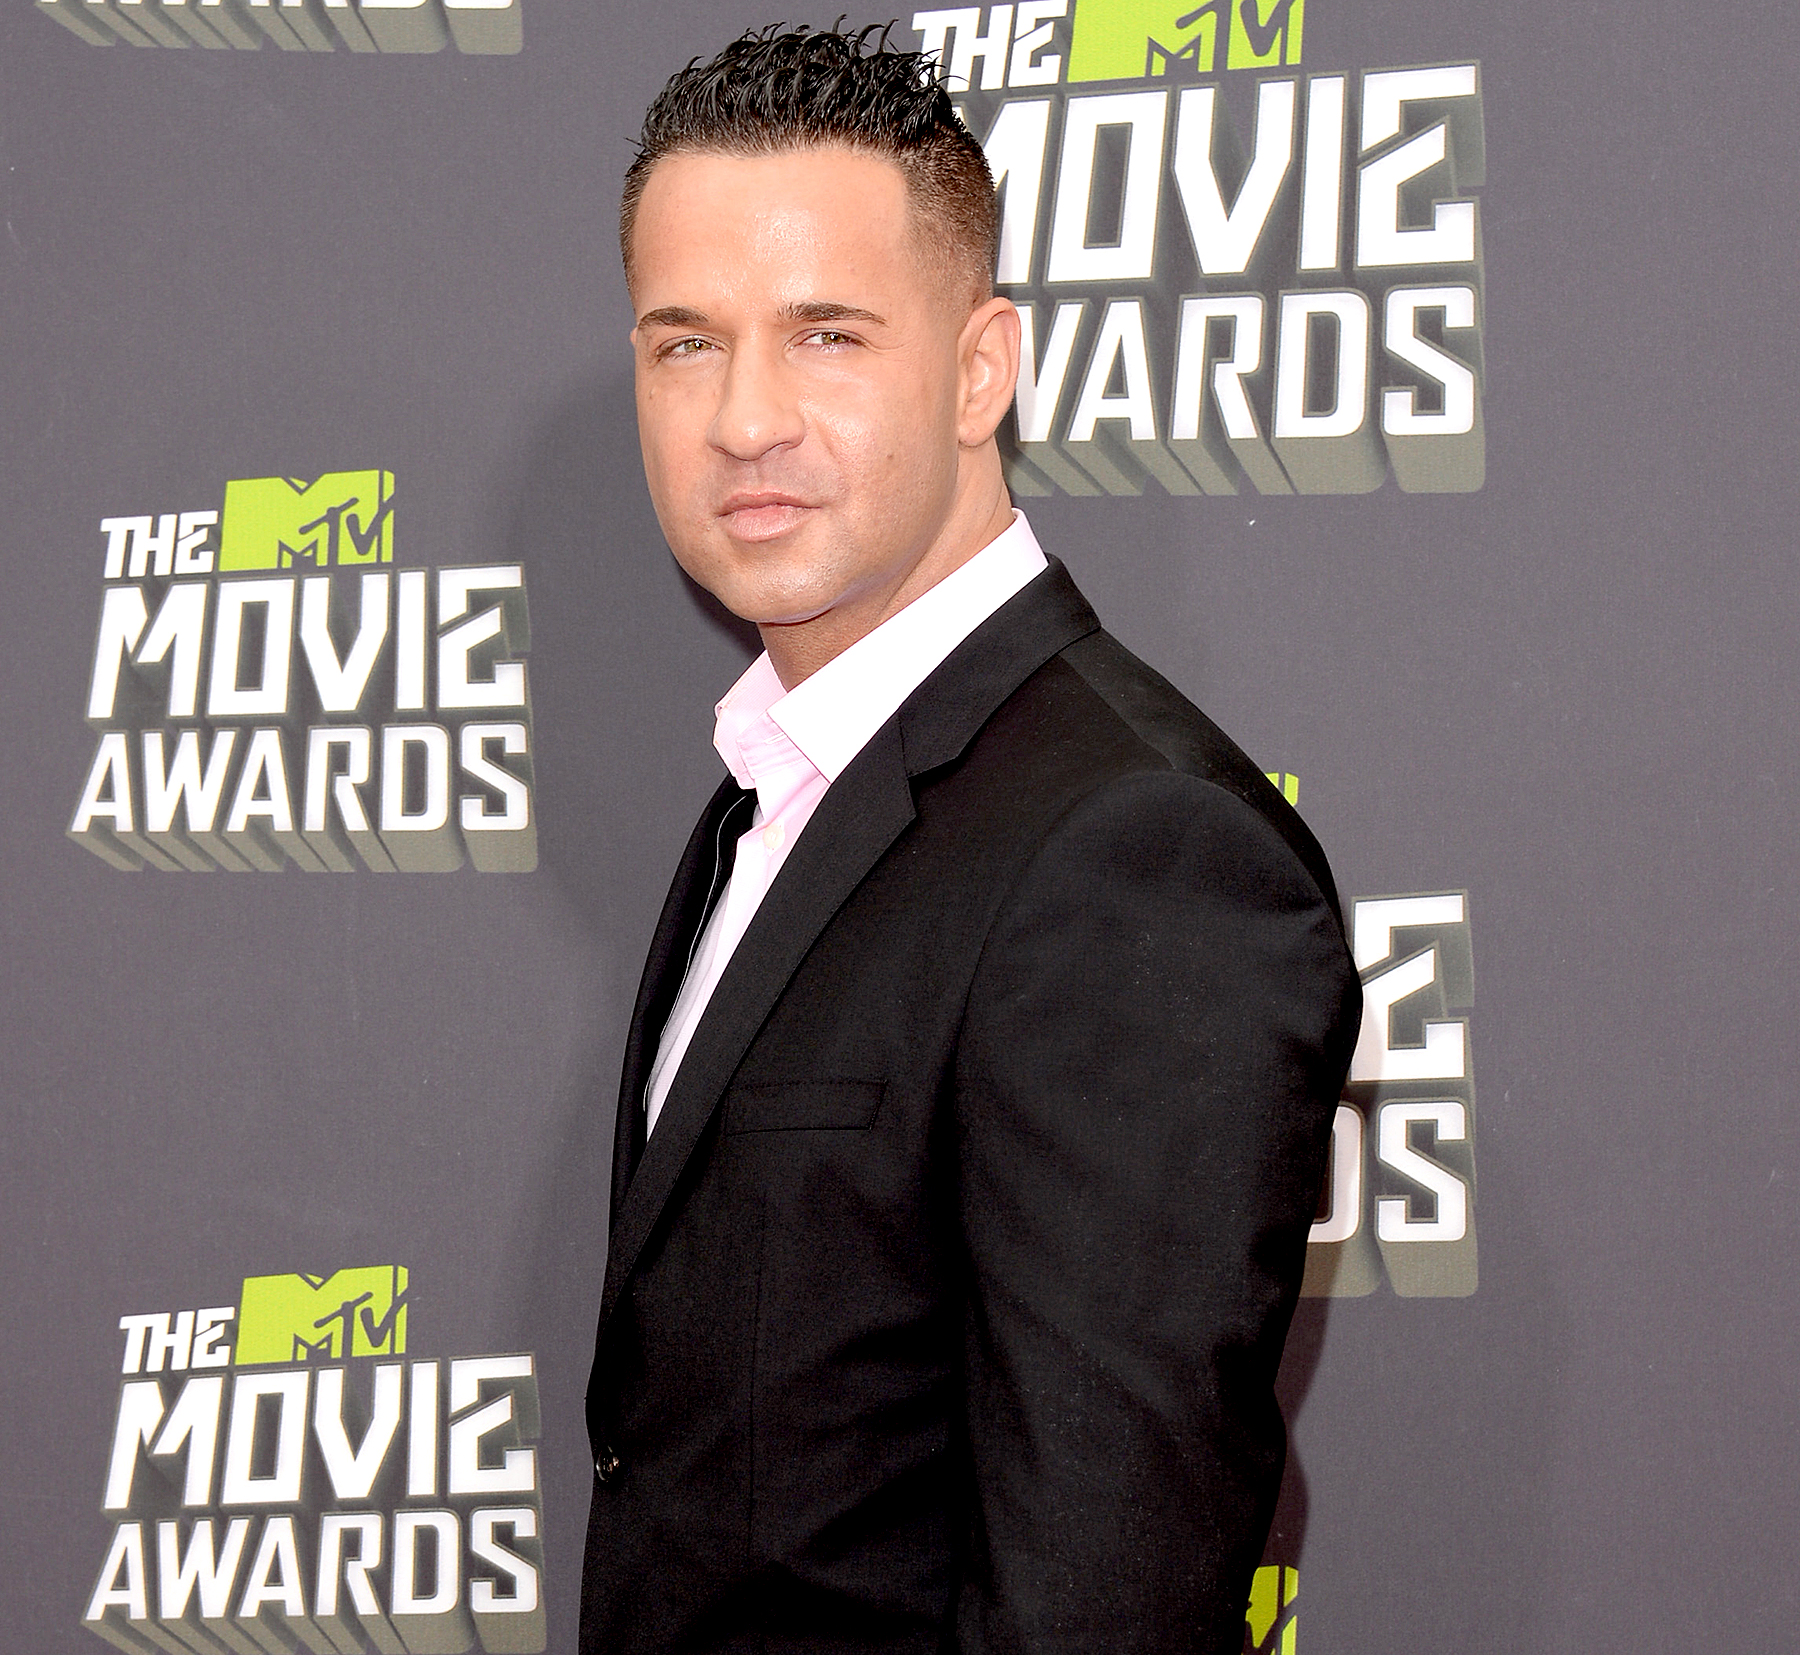 'Jersey Shore' star Mike 'The Situation' Sorrentino facing 15 years in jail